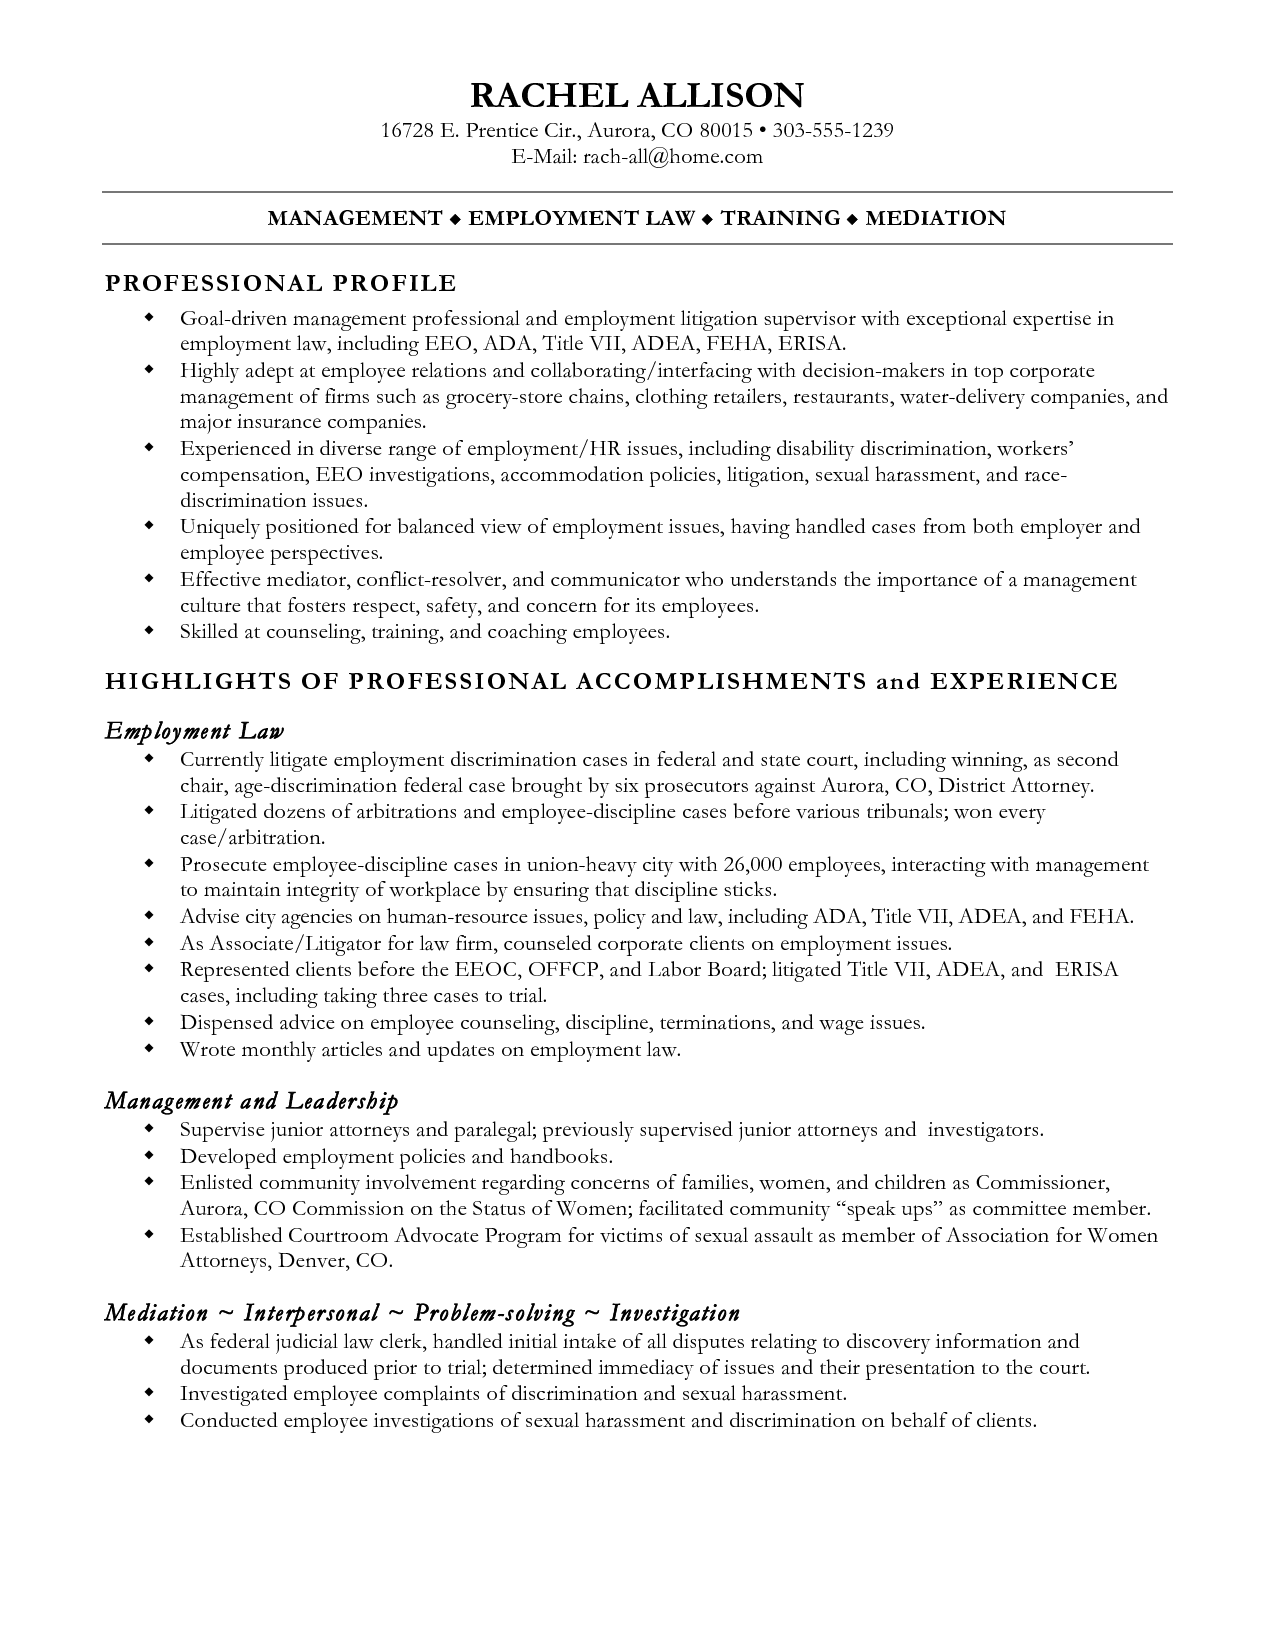 Legal Writing Law Essay Privatewriting paralegal intern resume